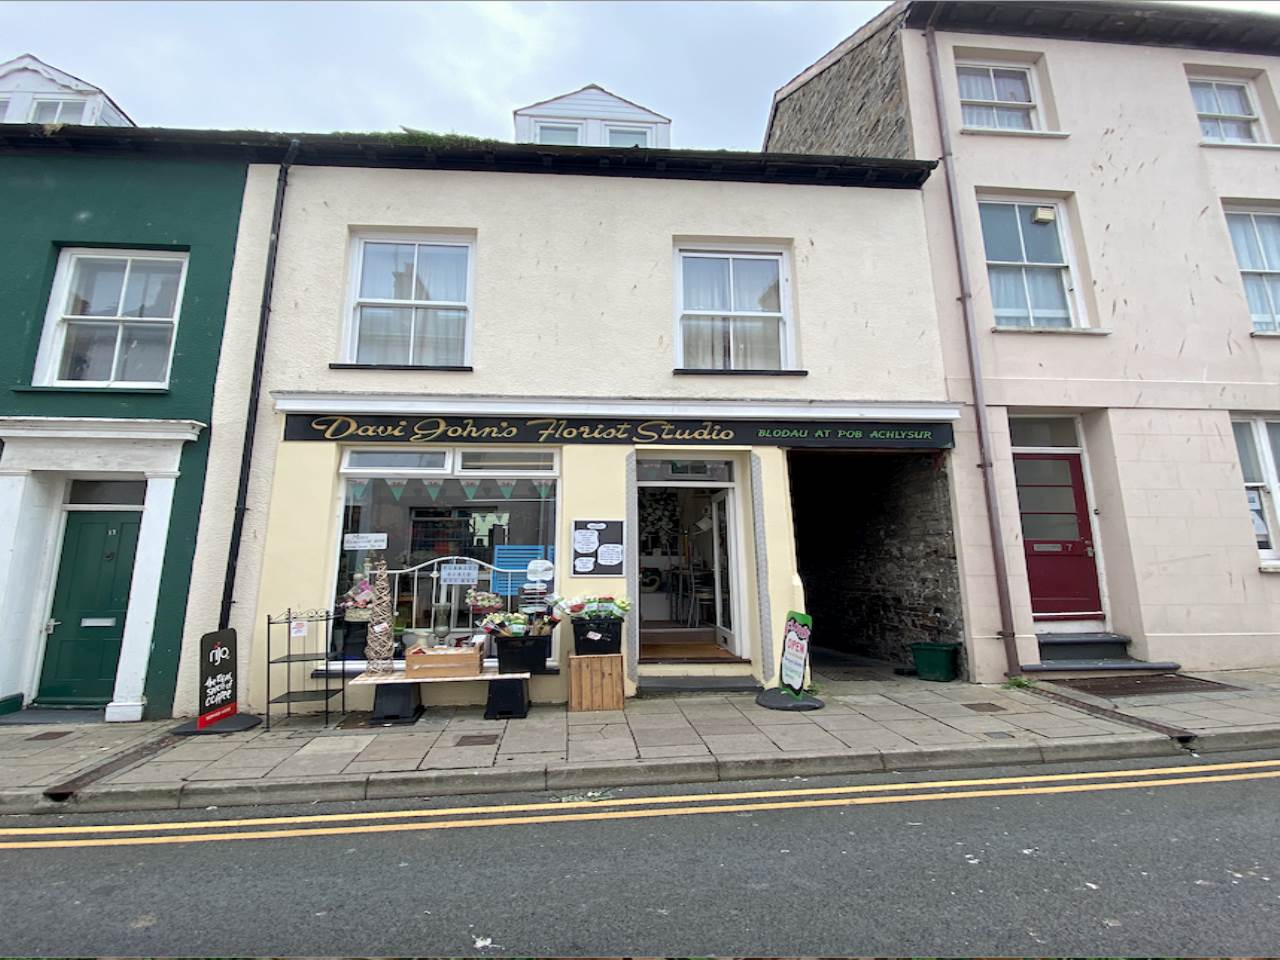 Commercial property to rent in Aberystwyth, Ceredigion, SY23